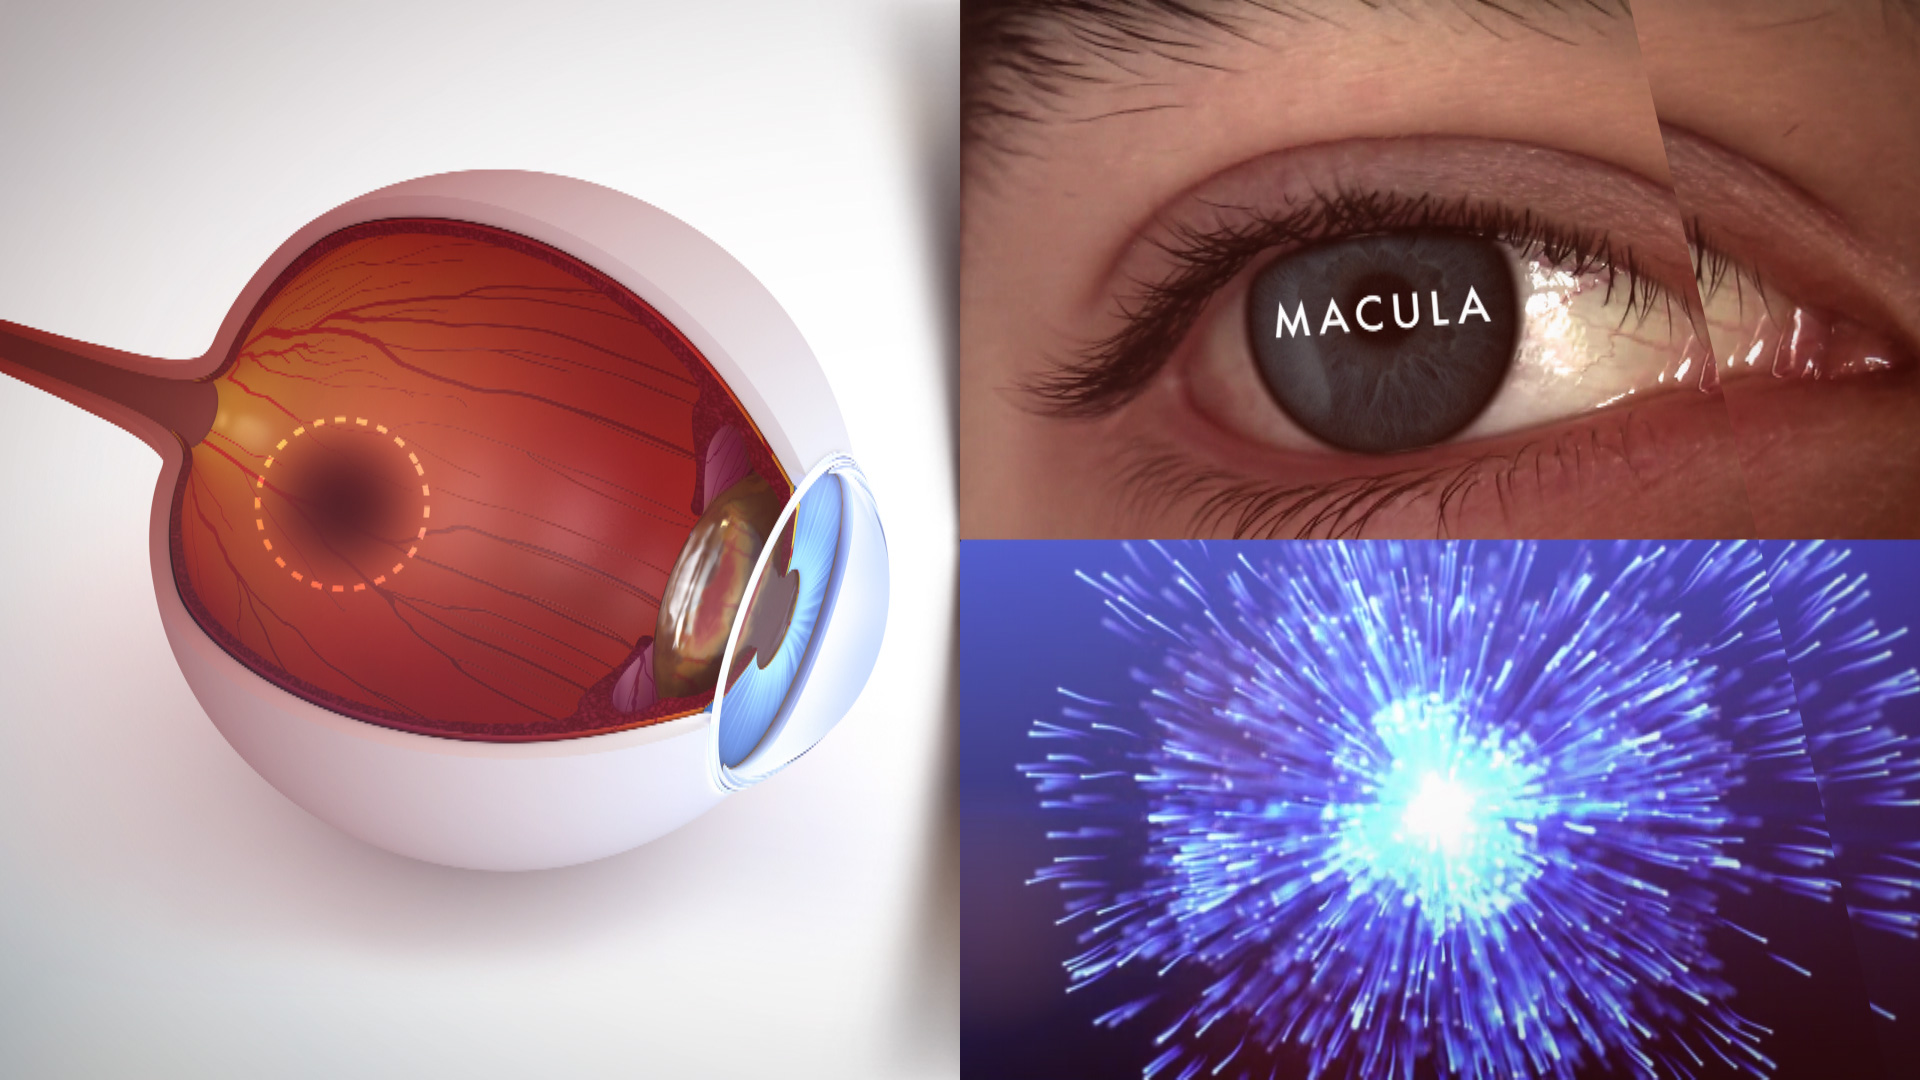 Superfoods Macula Example ©Holey&Moley Ltd